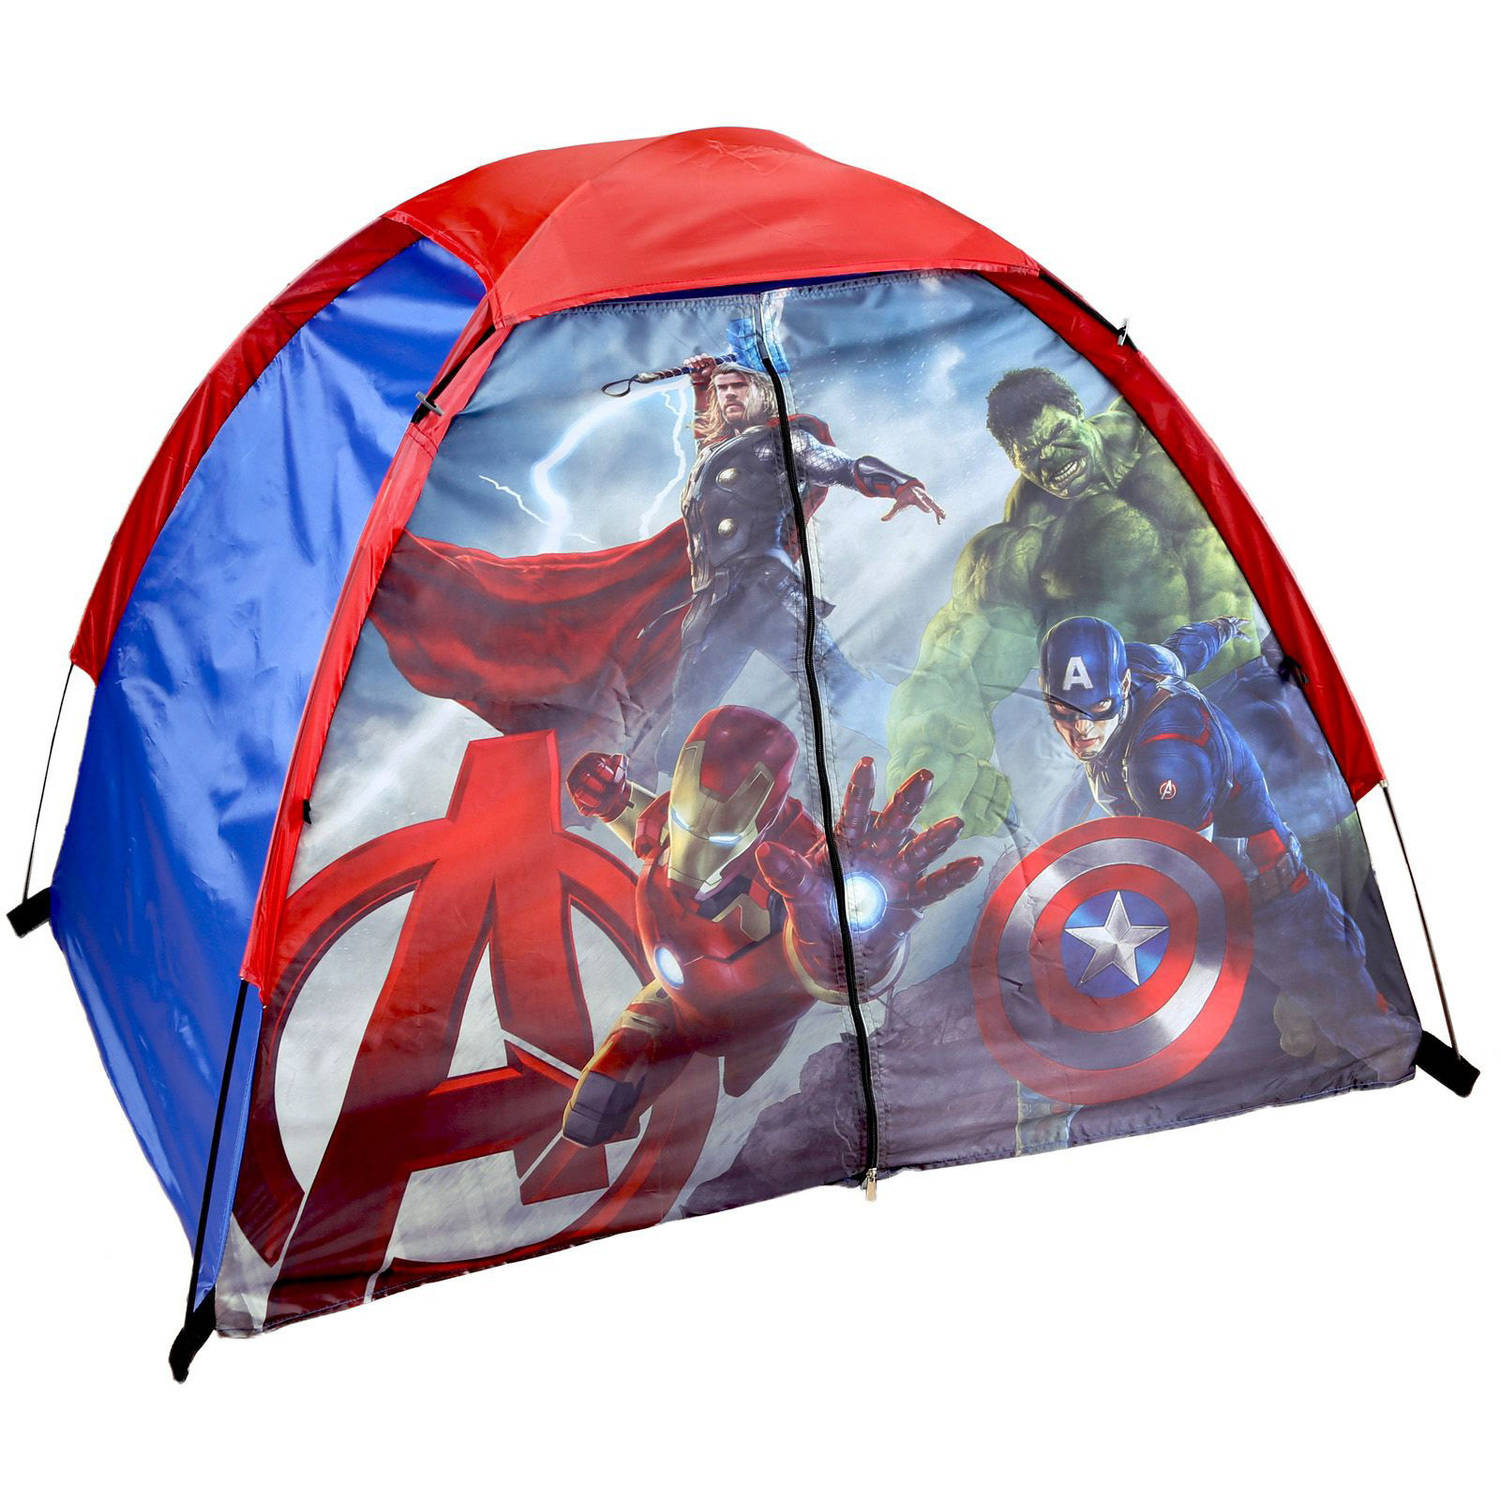 Marvel Avengers 4u0027 x 3u0027 x 36  2-Pole Dome Tent with Mesh Ceiling - Walmart.com  sc 1 st  Walmart : play tents for kids target - memphite.com